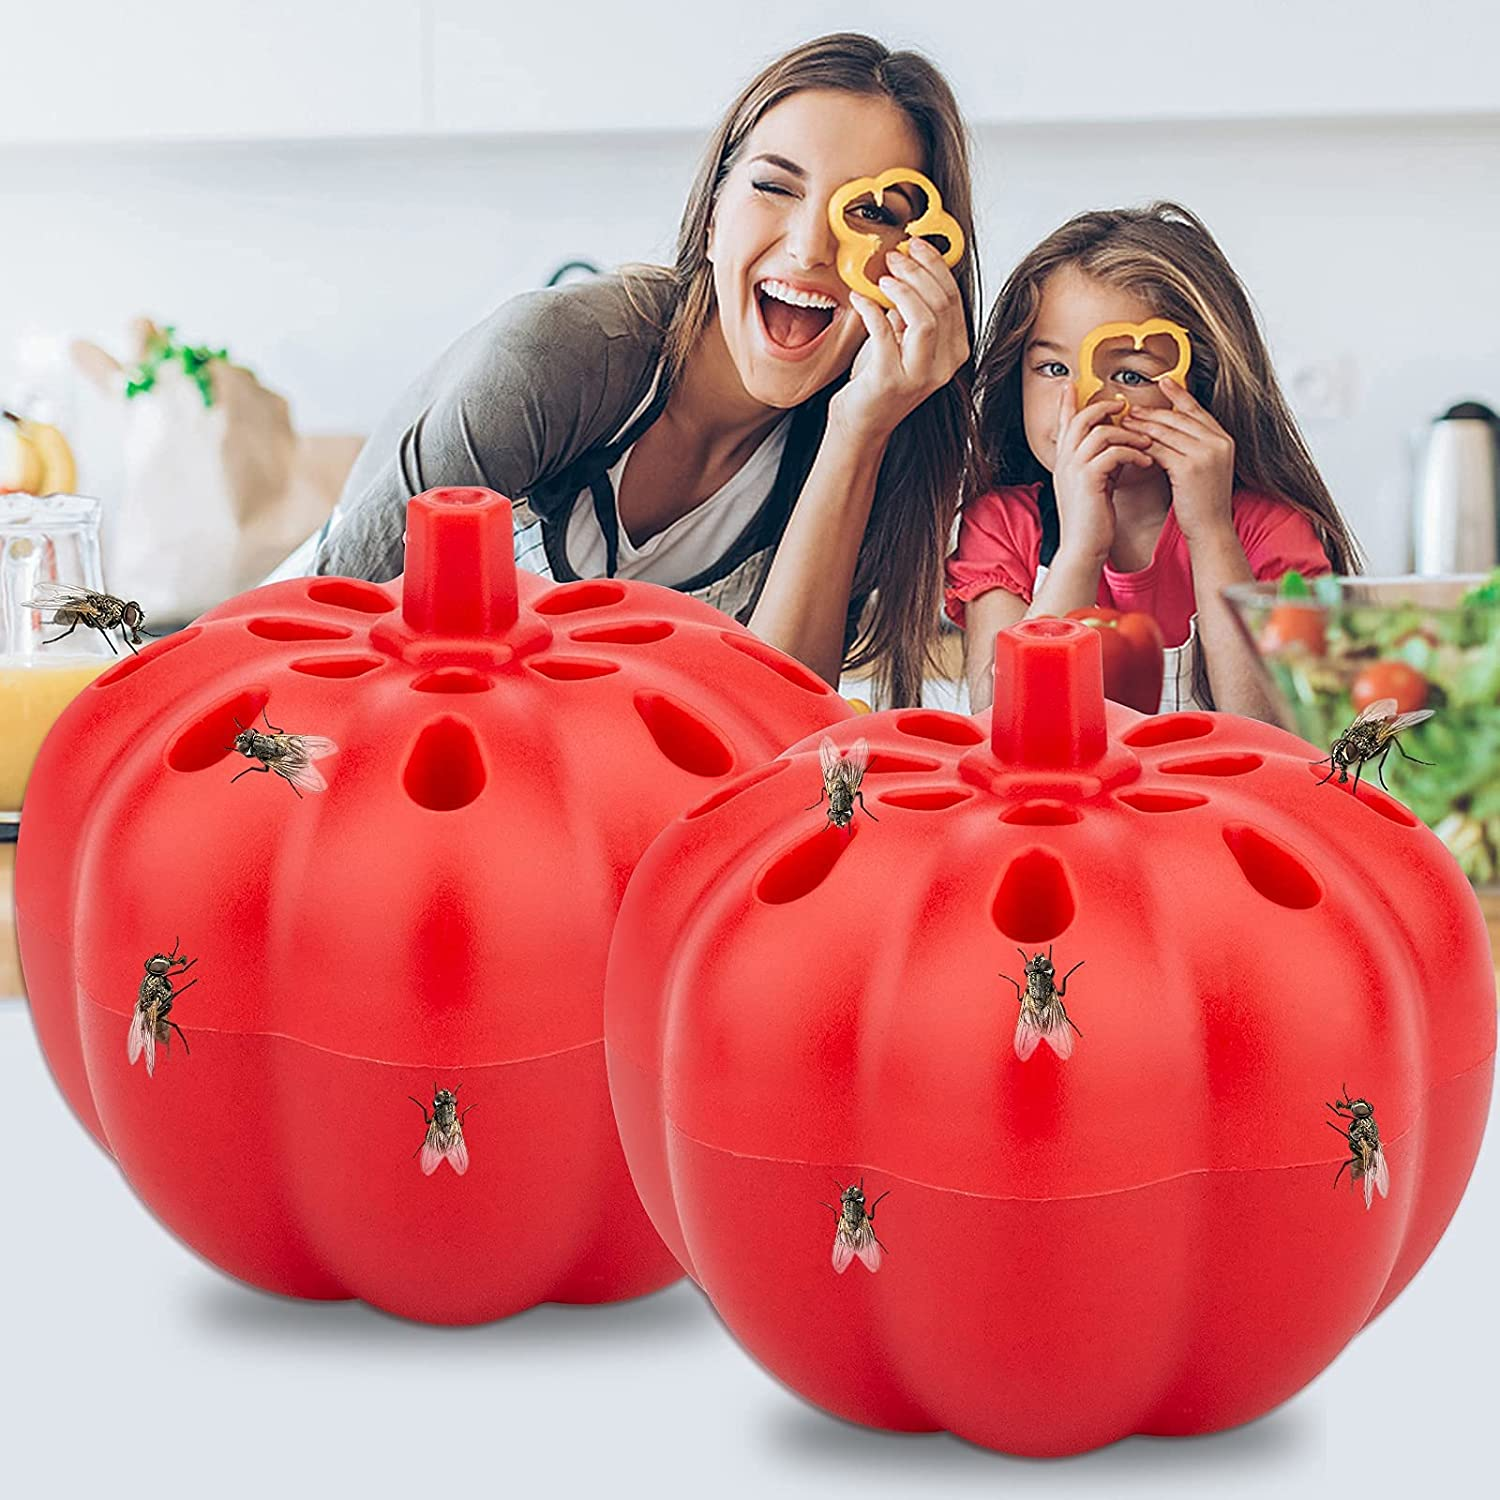 Allinall Fruit Fly Trap,Effective Gnats Trap Indoor Fruit Fly Killer,Easy to Use & Safe Non-Toxic Lure Fly Catcher and Gnat Killer for Indoor/Home/Kitchen/Dining Areas Pumpkin Shape 2 Pack Frosted